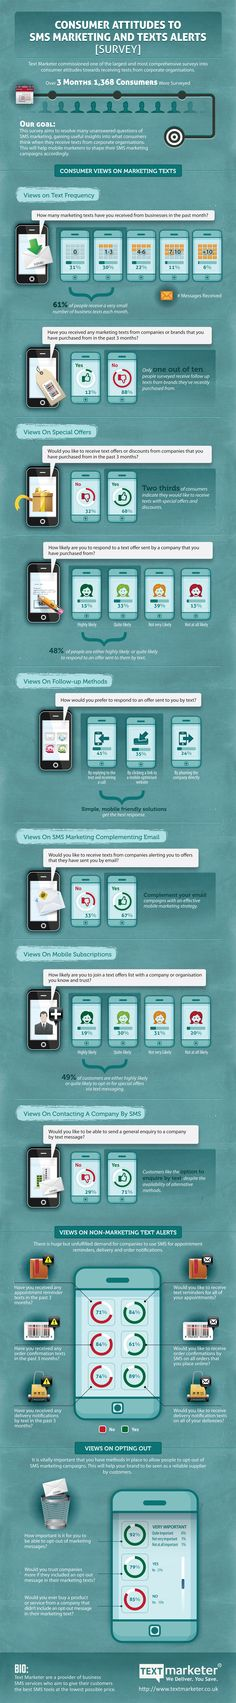 Consumer Attitudes to SMS Marketing – Infographic